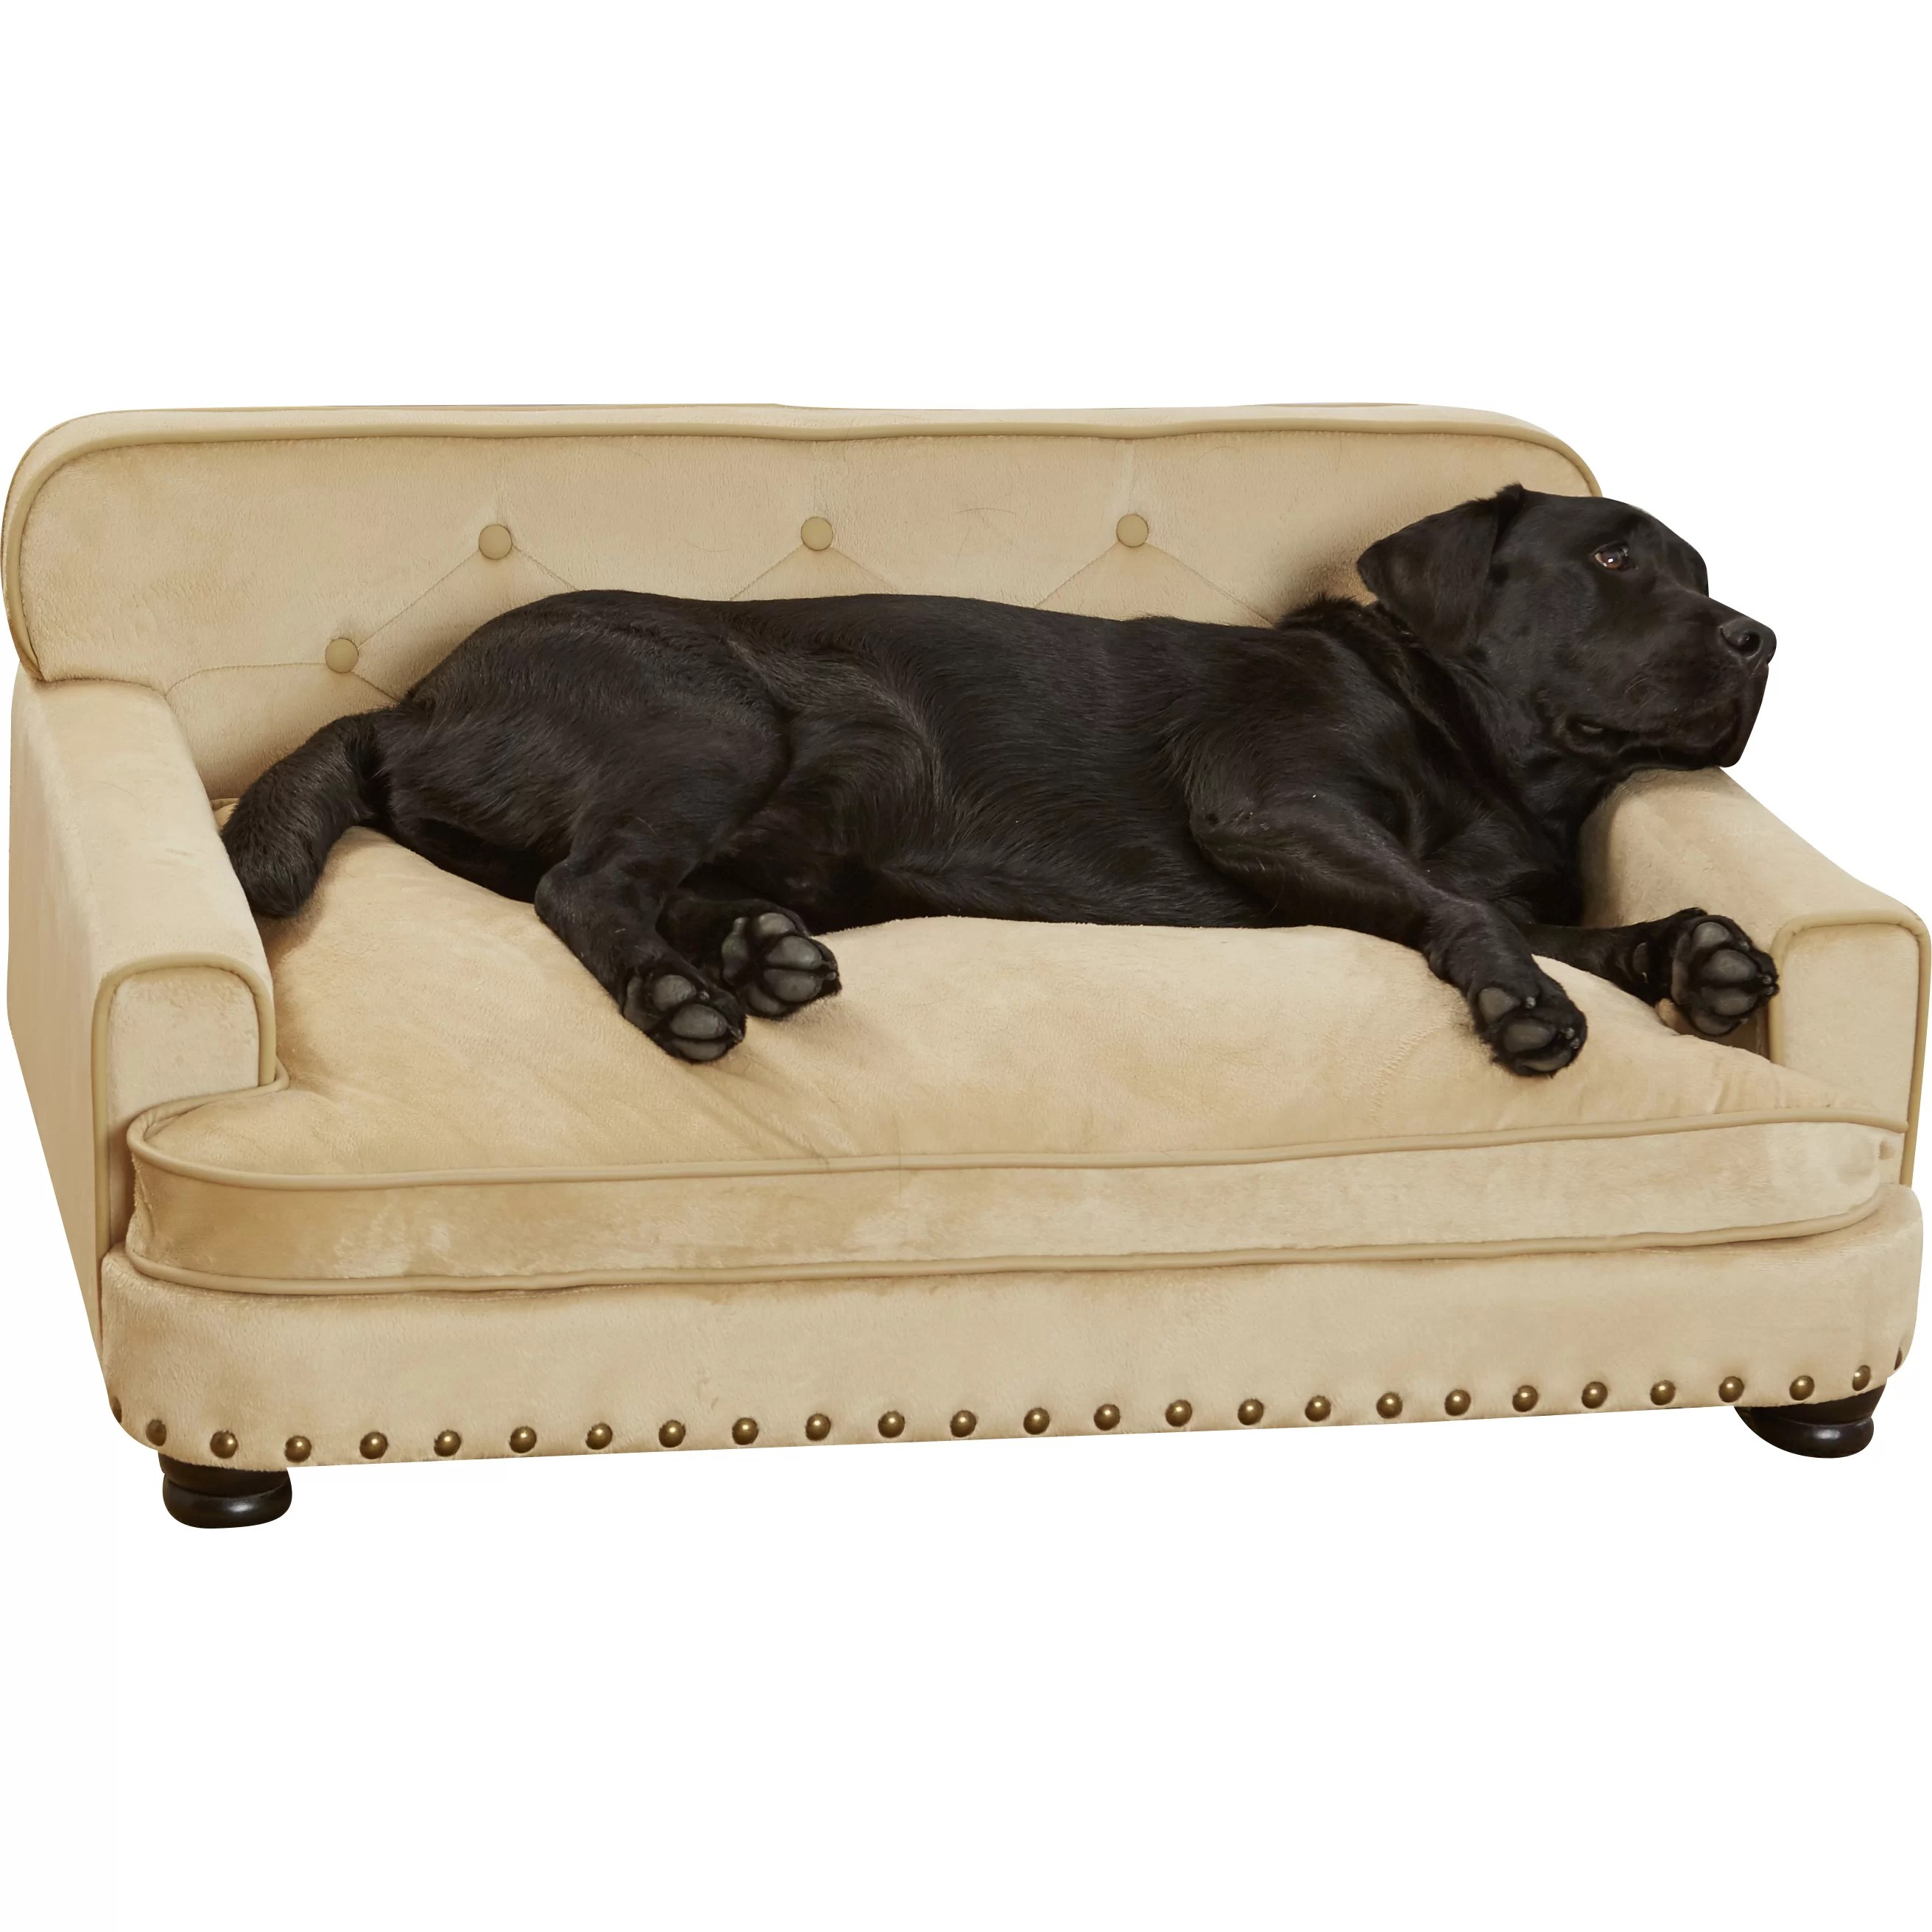 cat tunnel sofa price homestretch reclining enchanted home pet library dog and reviews wayfair